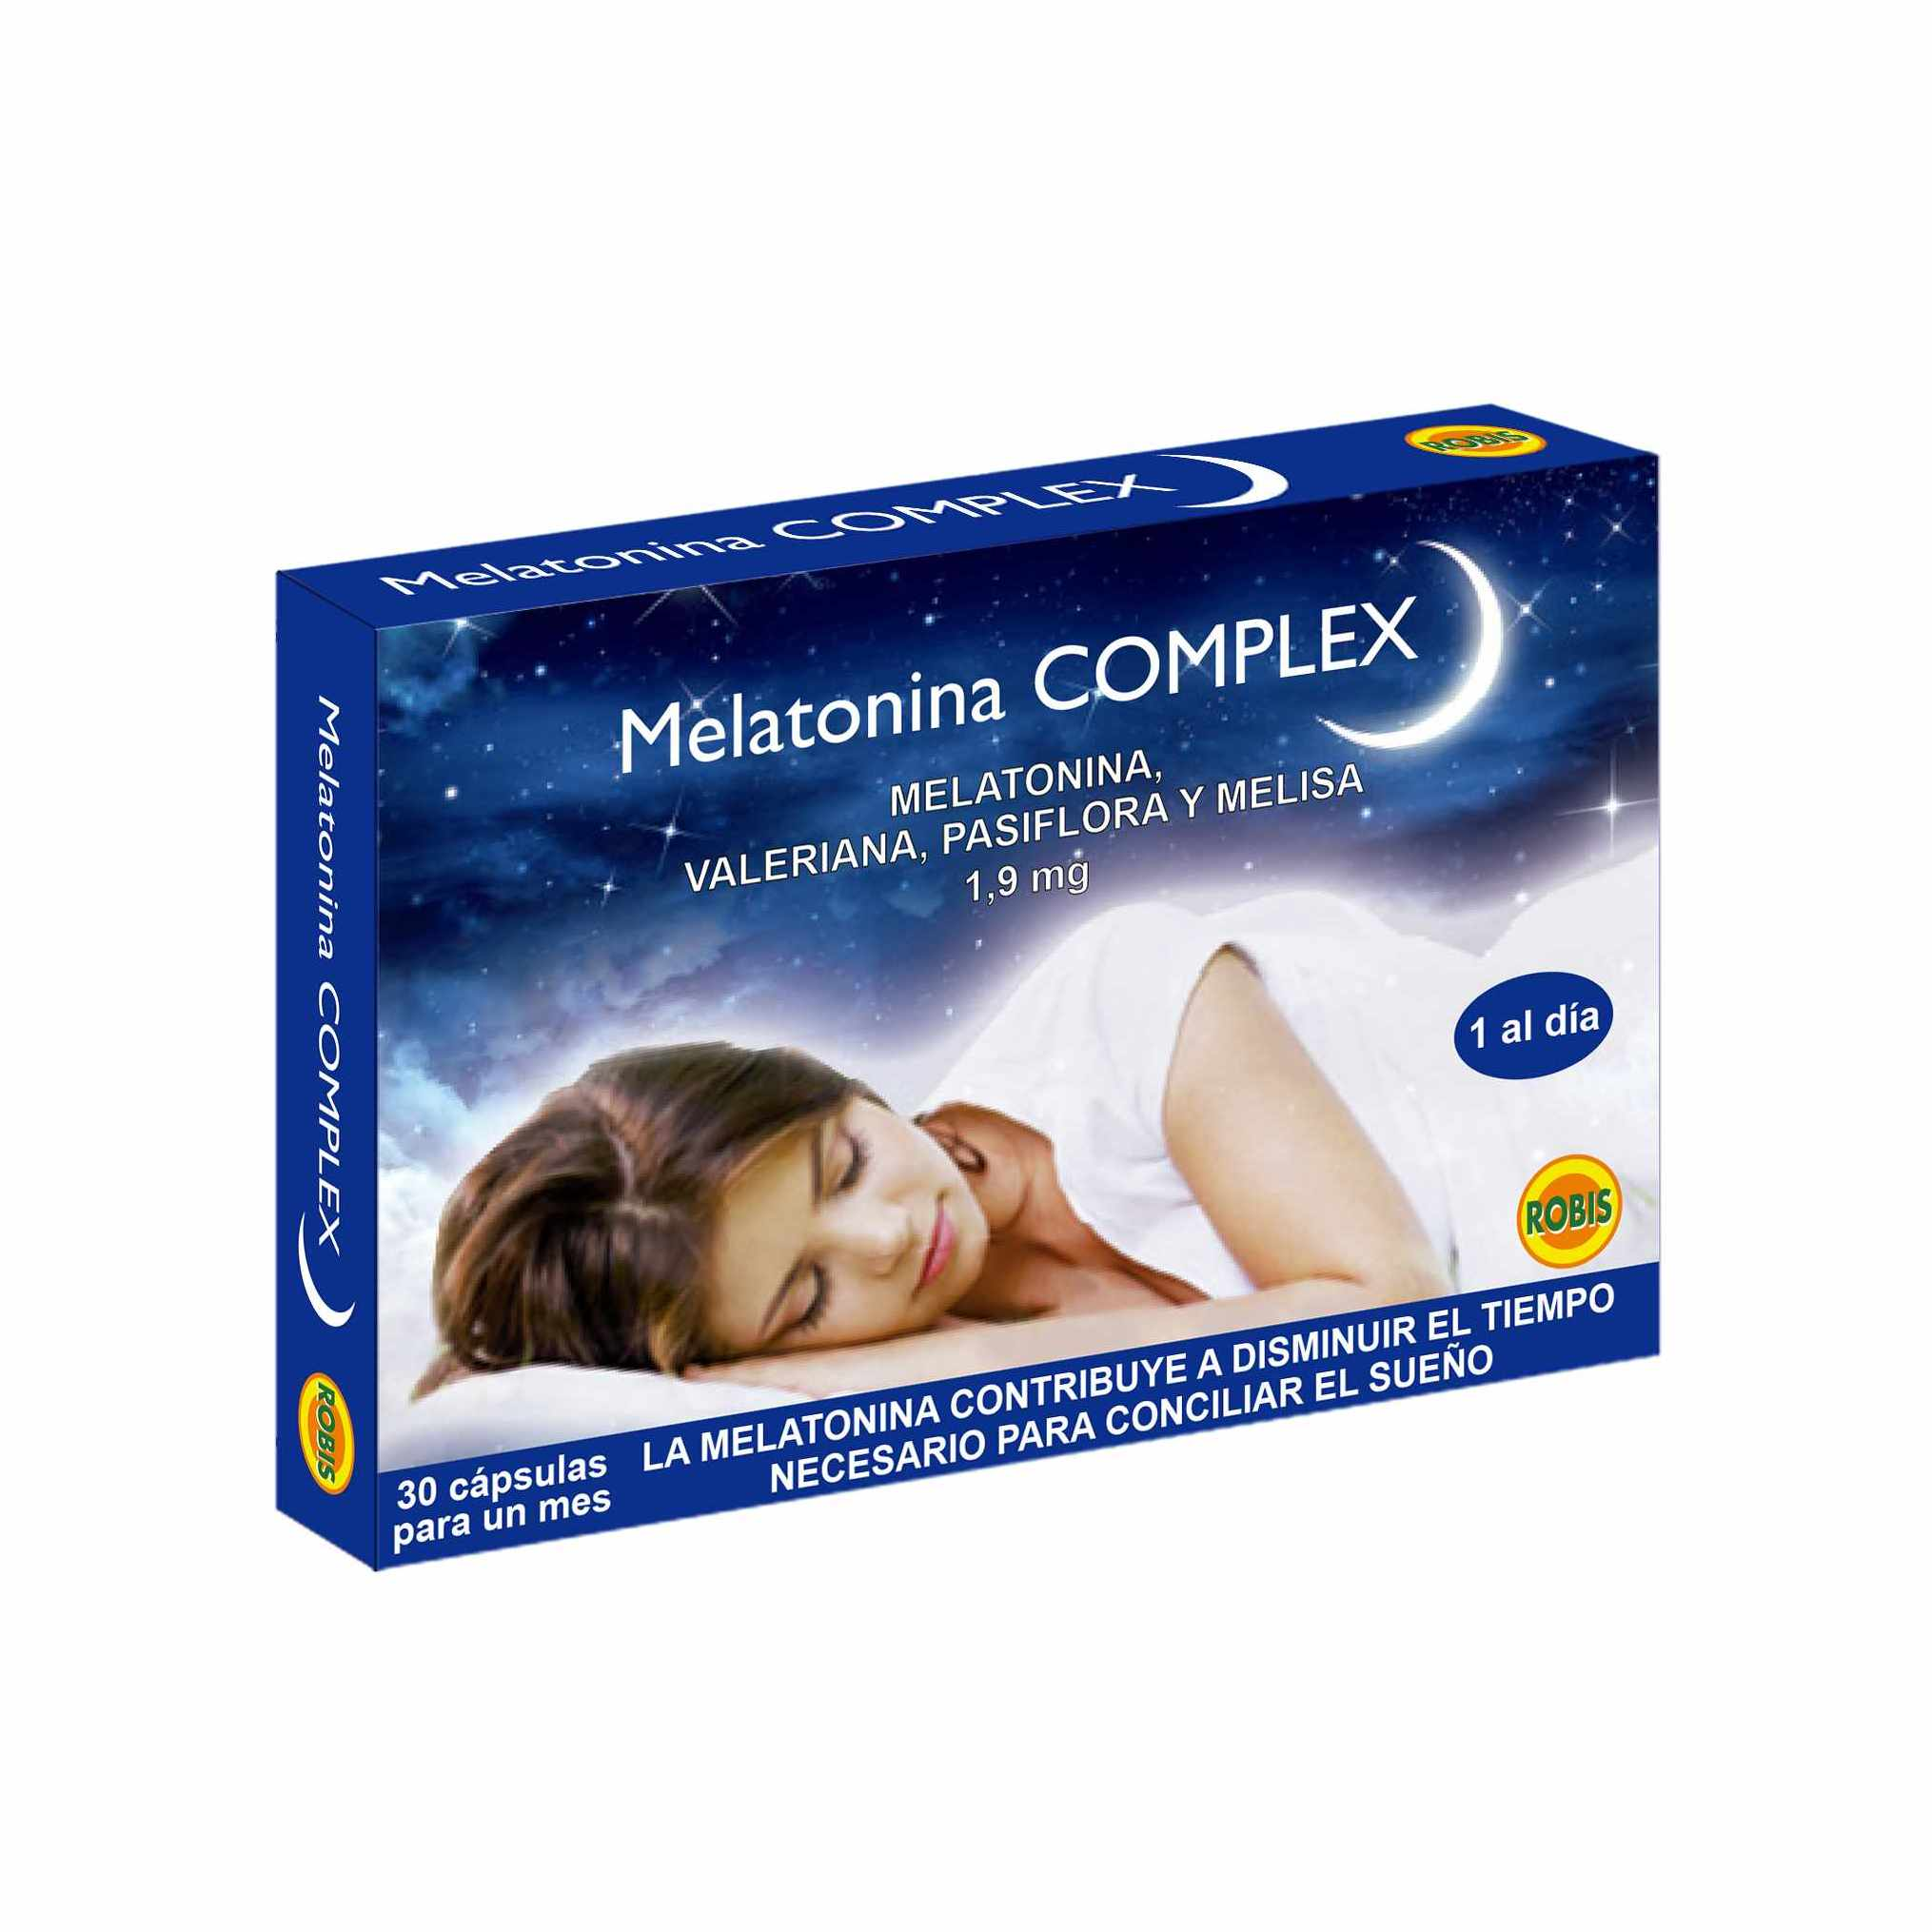 Melatonina Complex 1,9 Mg